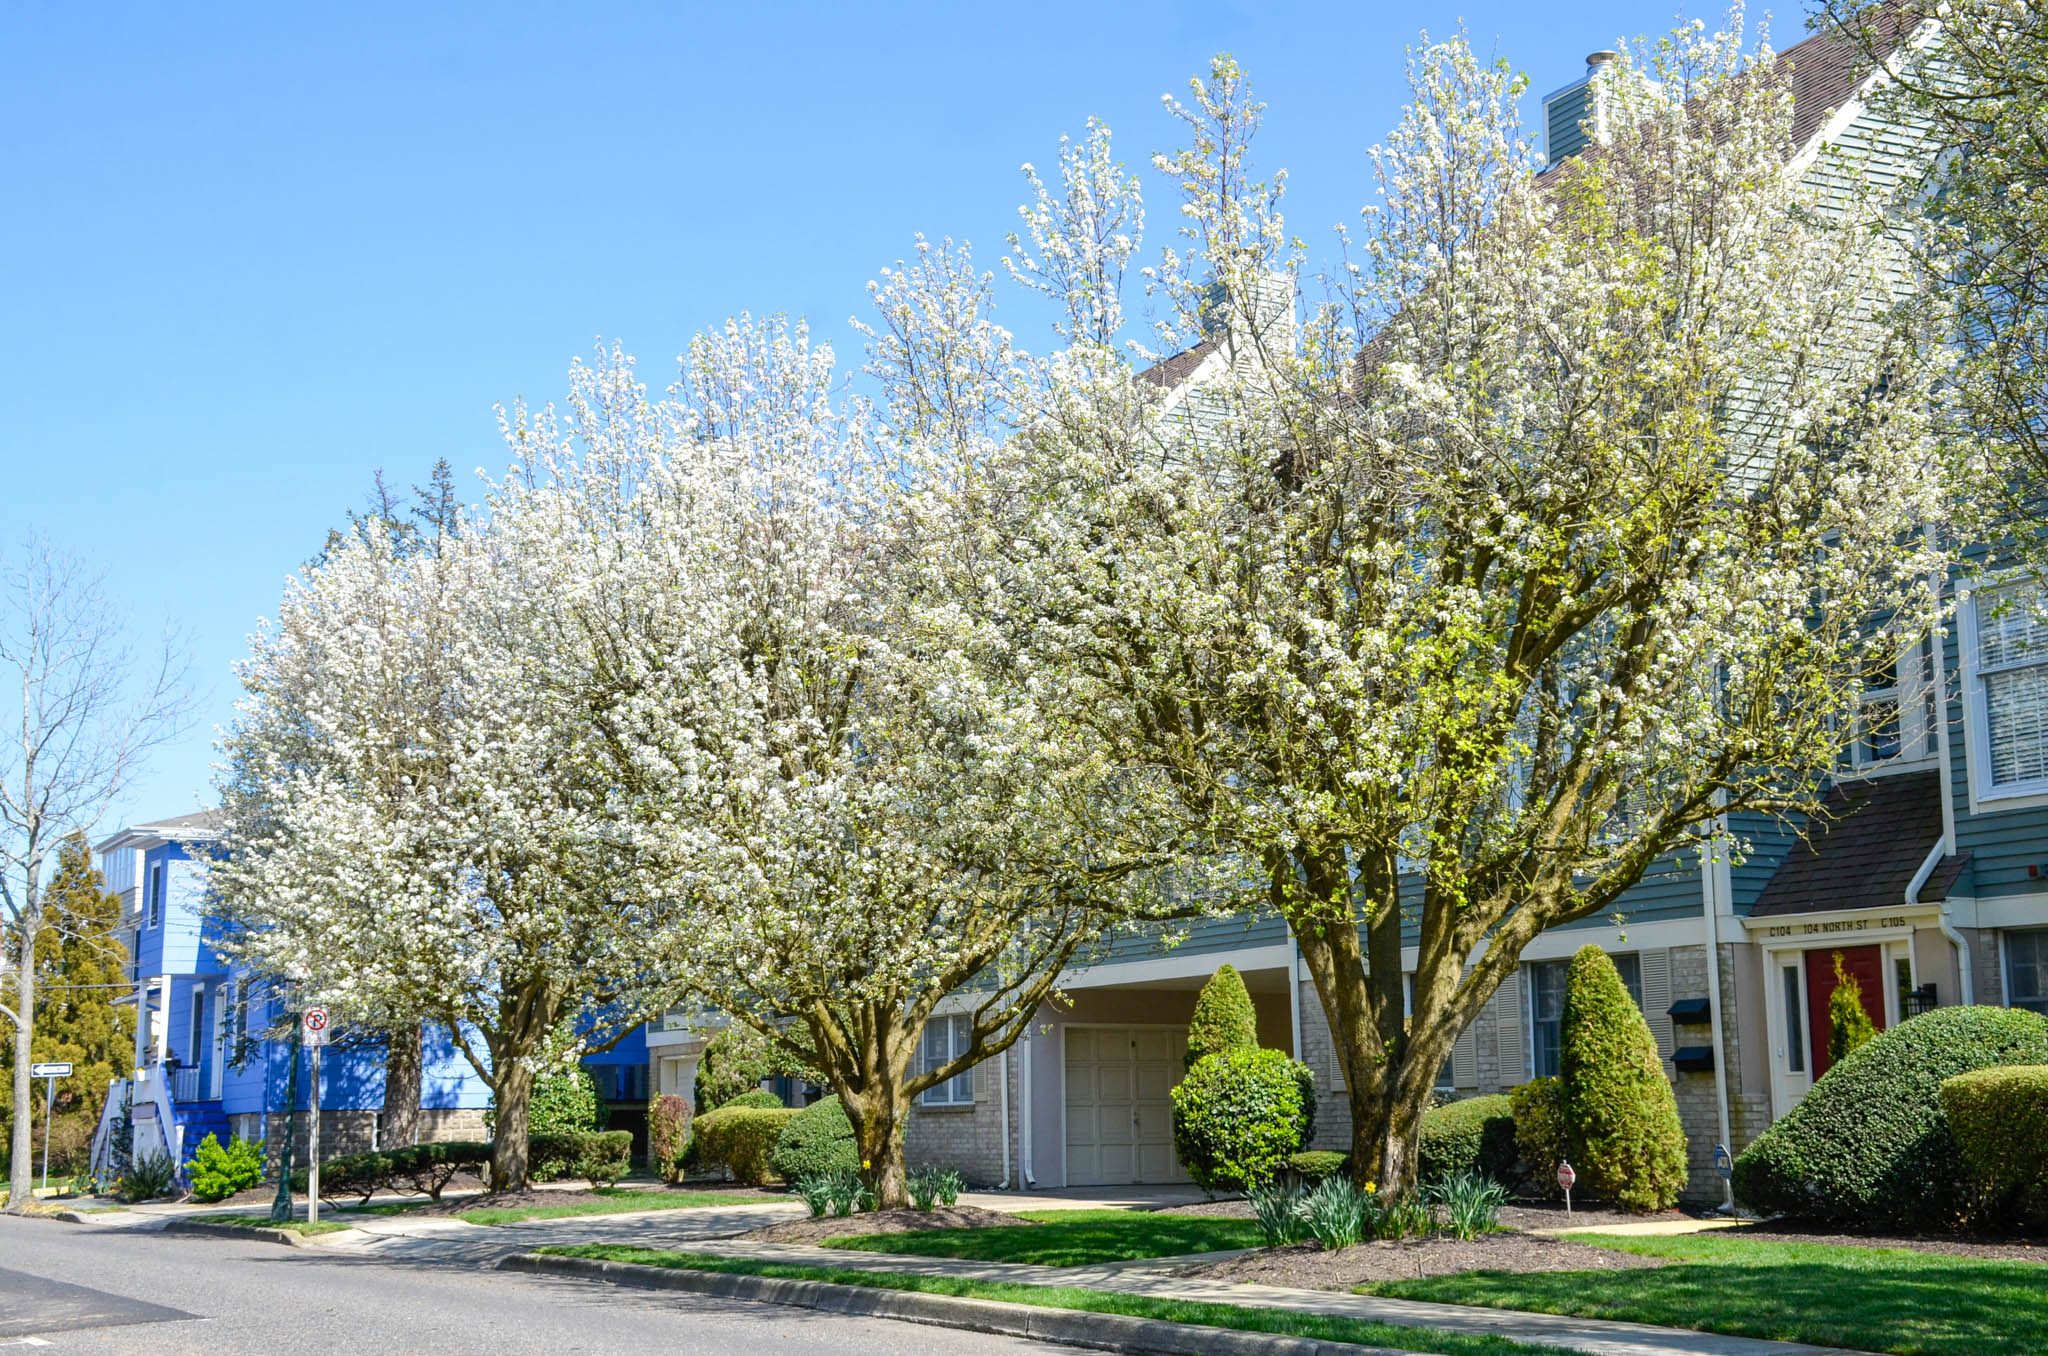 Trees are blossoming